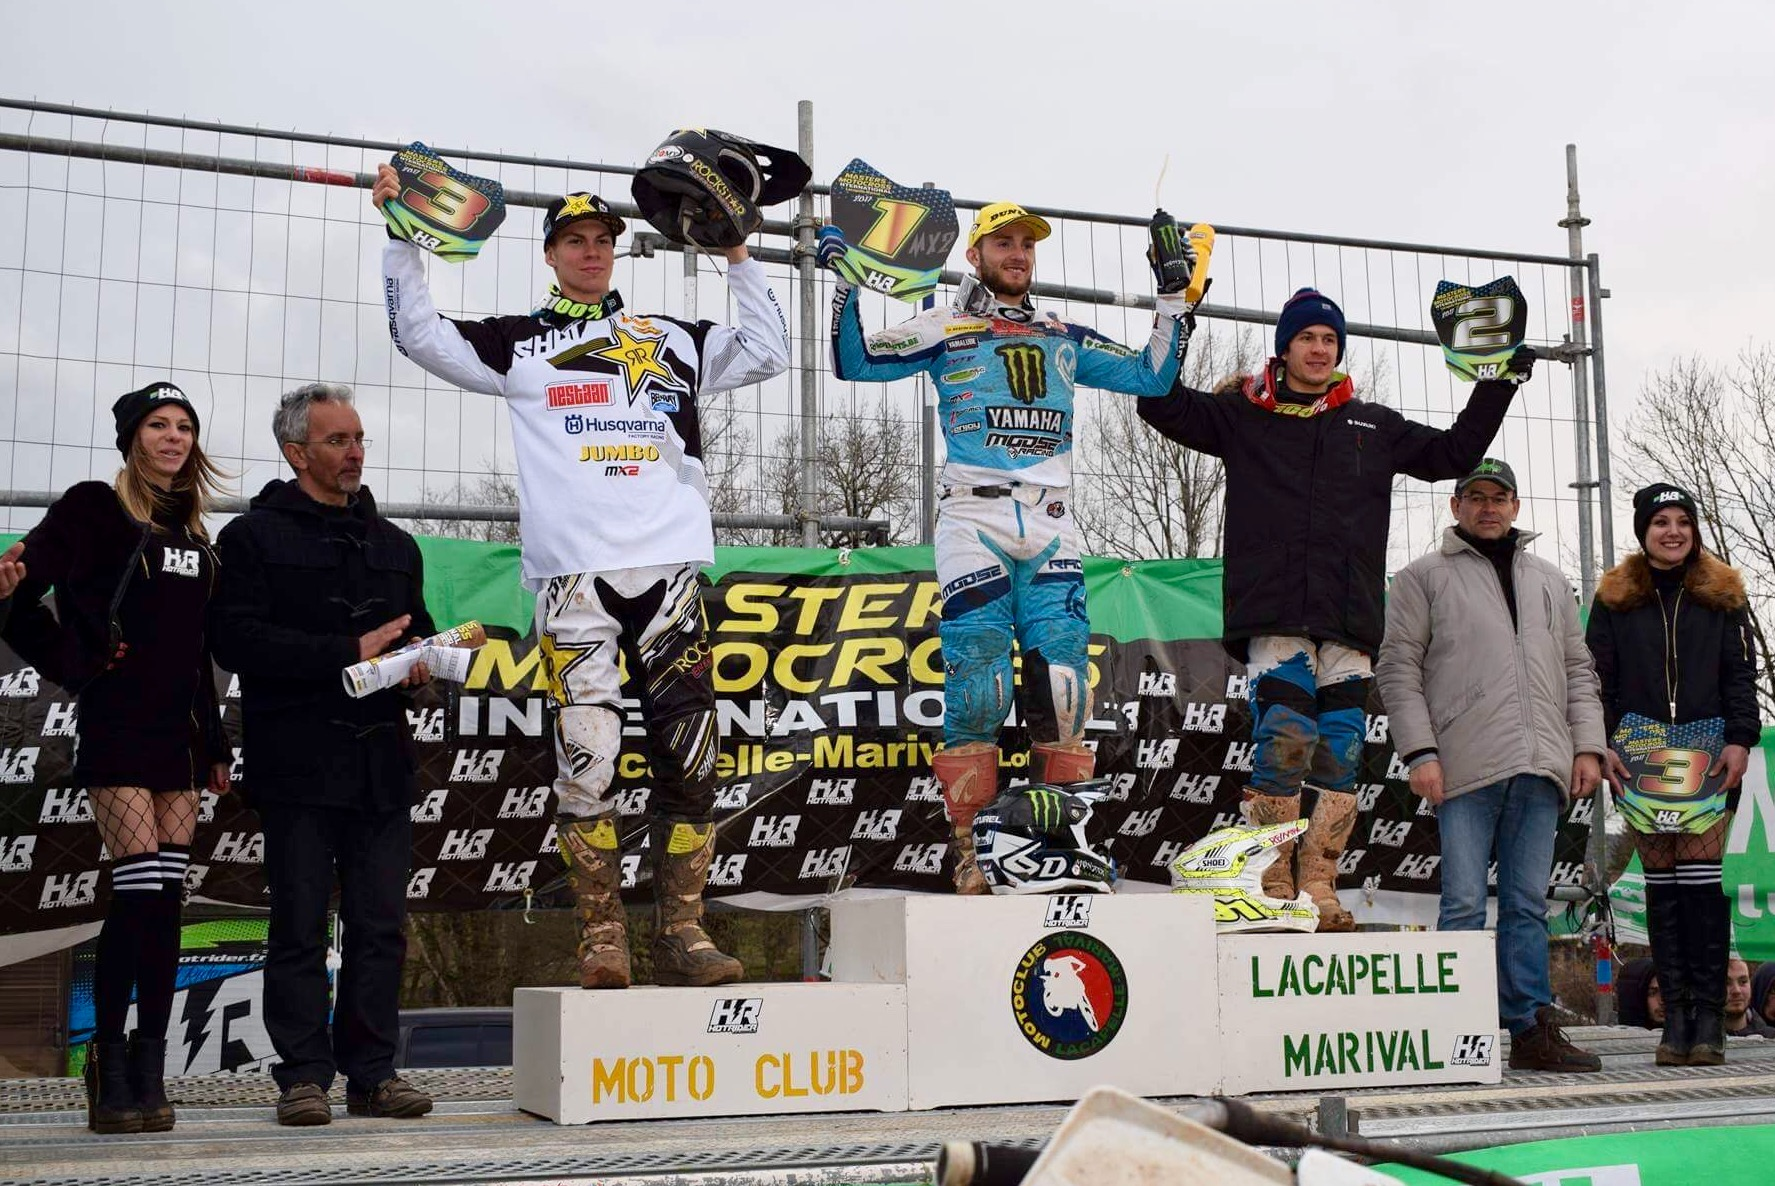 Podium MX2 Lacapelle Marival